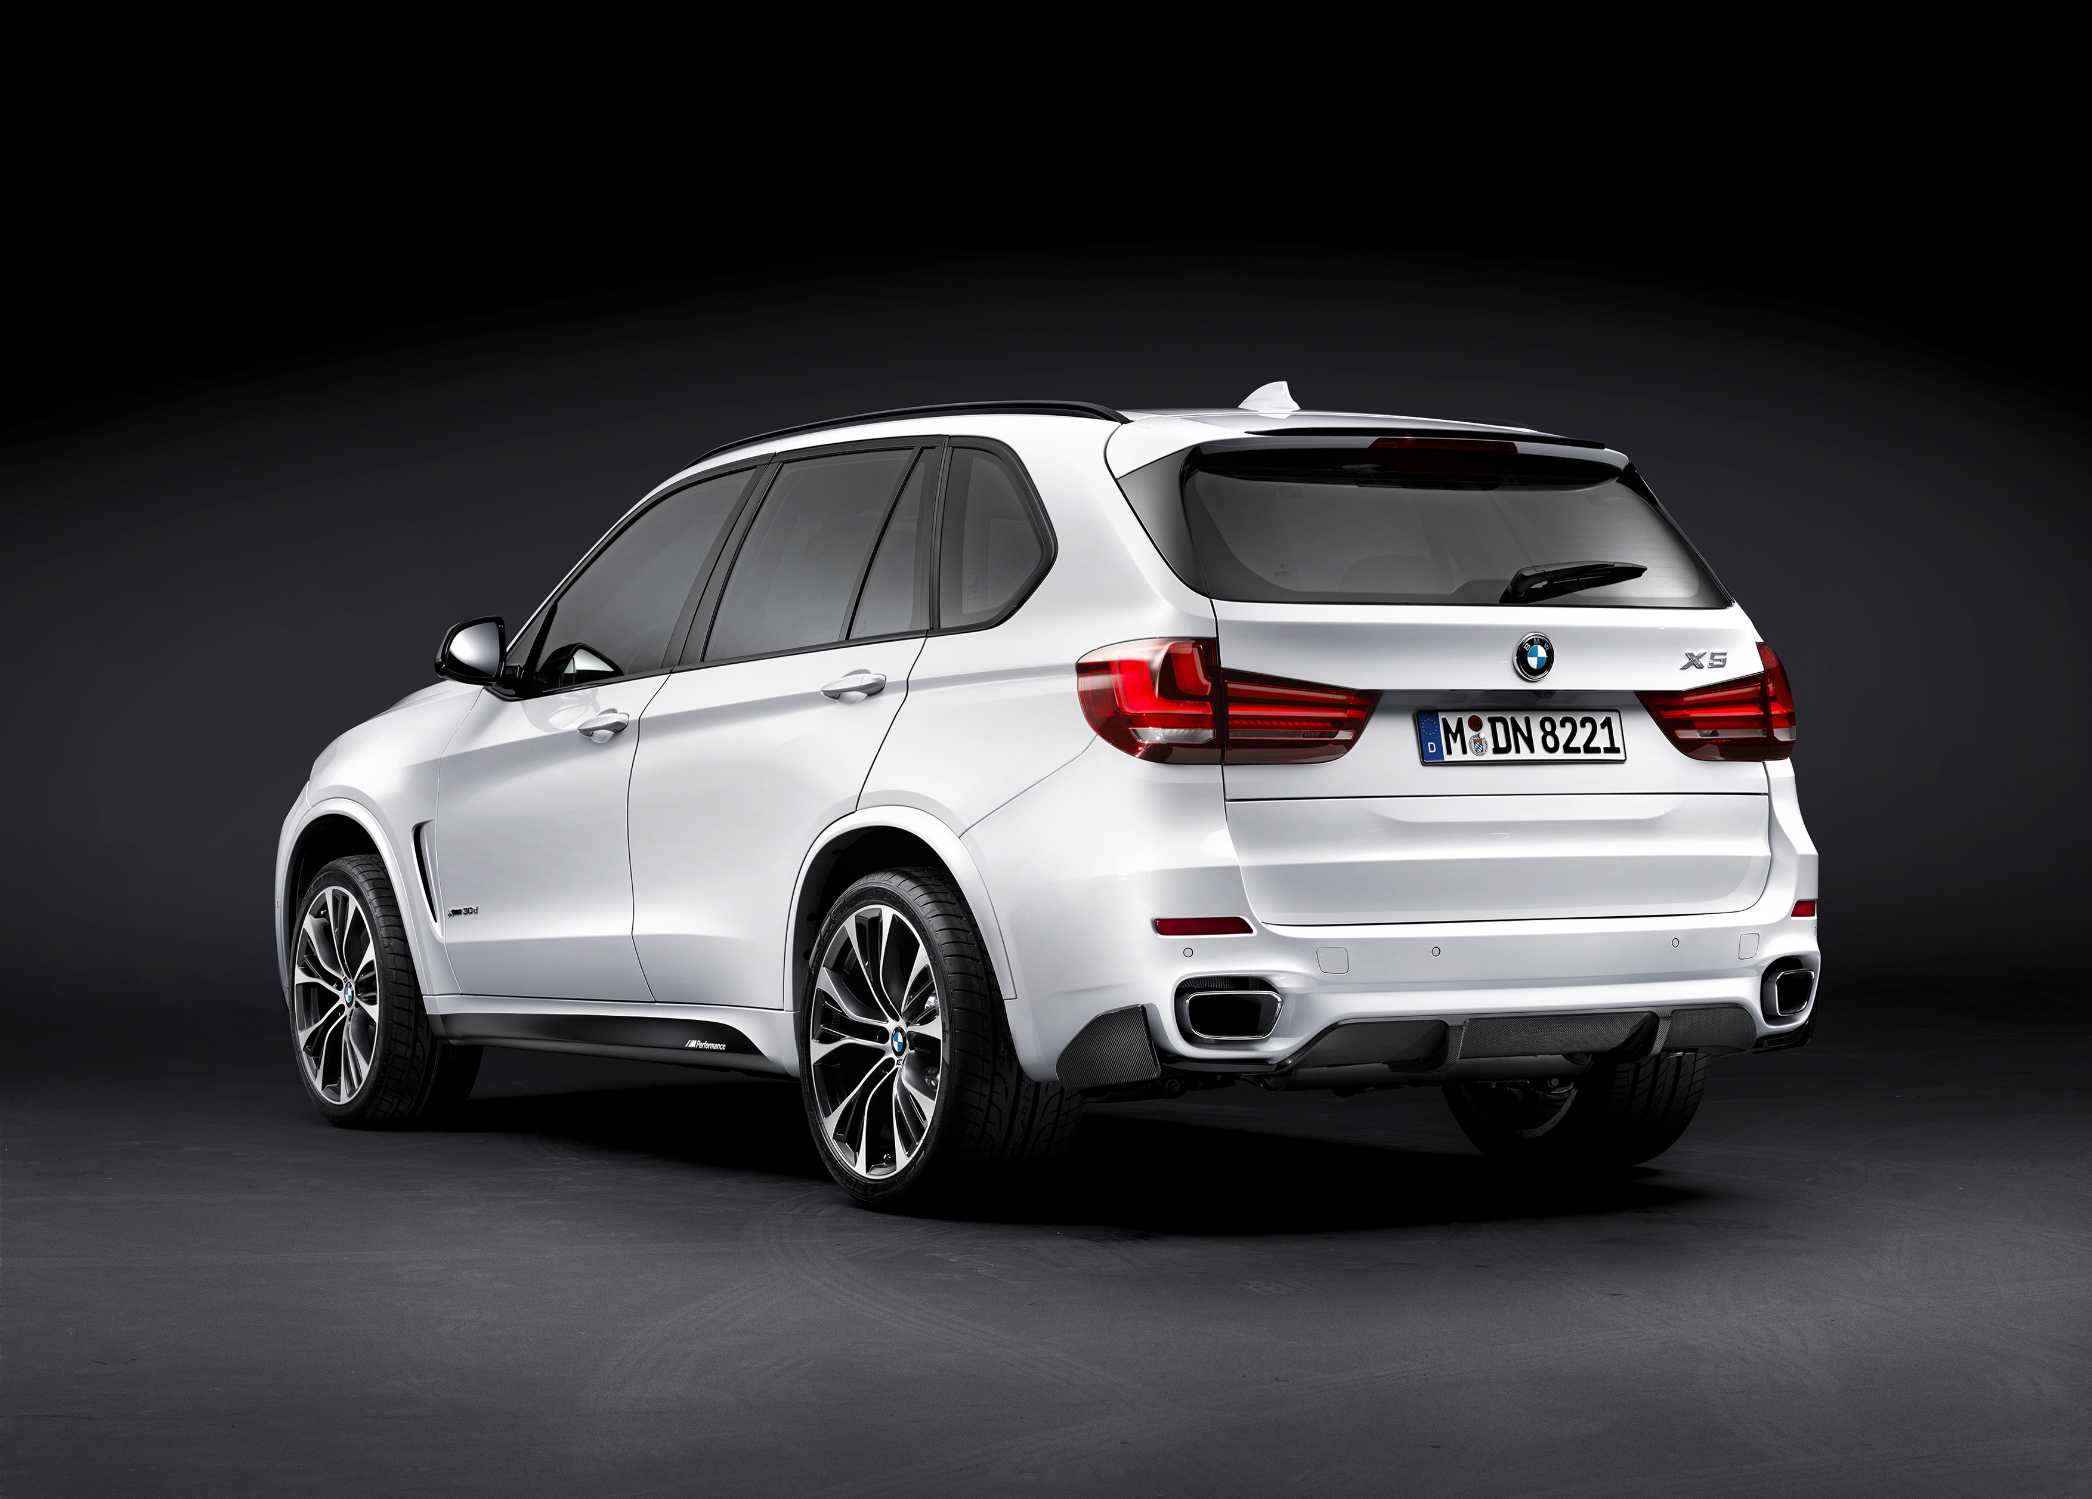 der neue bmw x5 mit bmw m performance zubeh r 11 2013. Black Bedroom Furniture Sets. Home Design Ideas